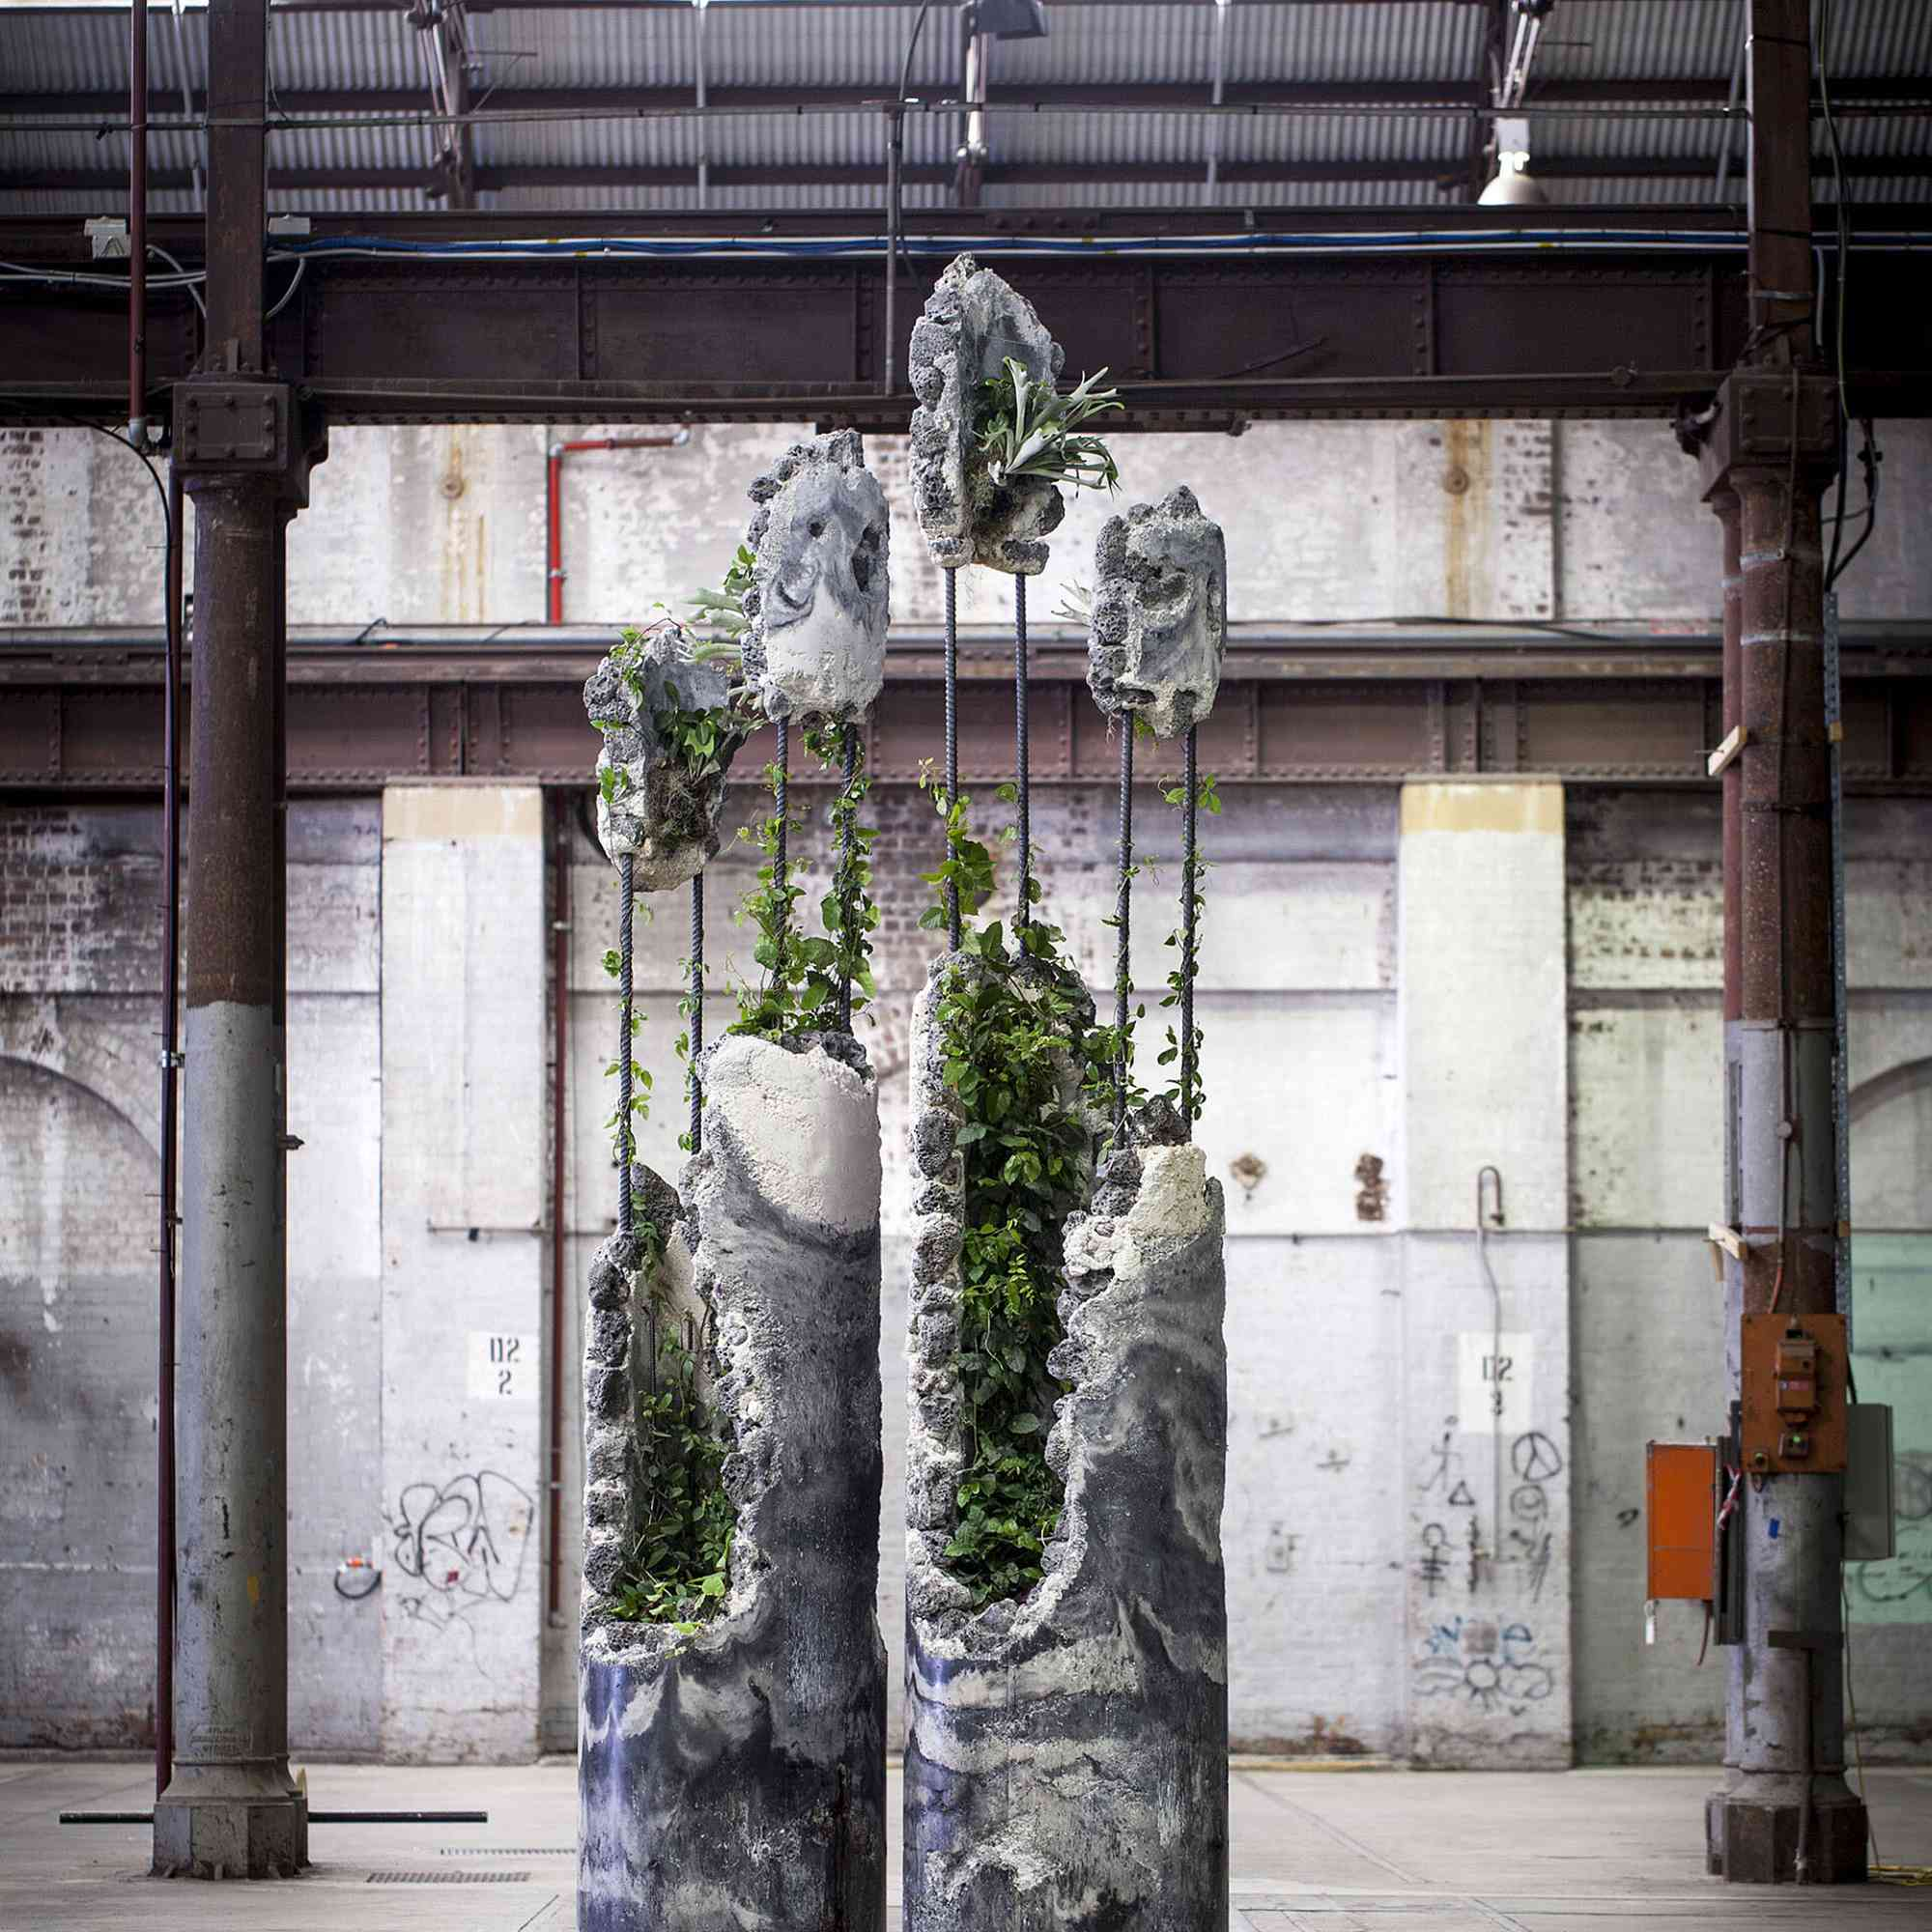 reclaimed industrial materials and plant sculptures Jaime North